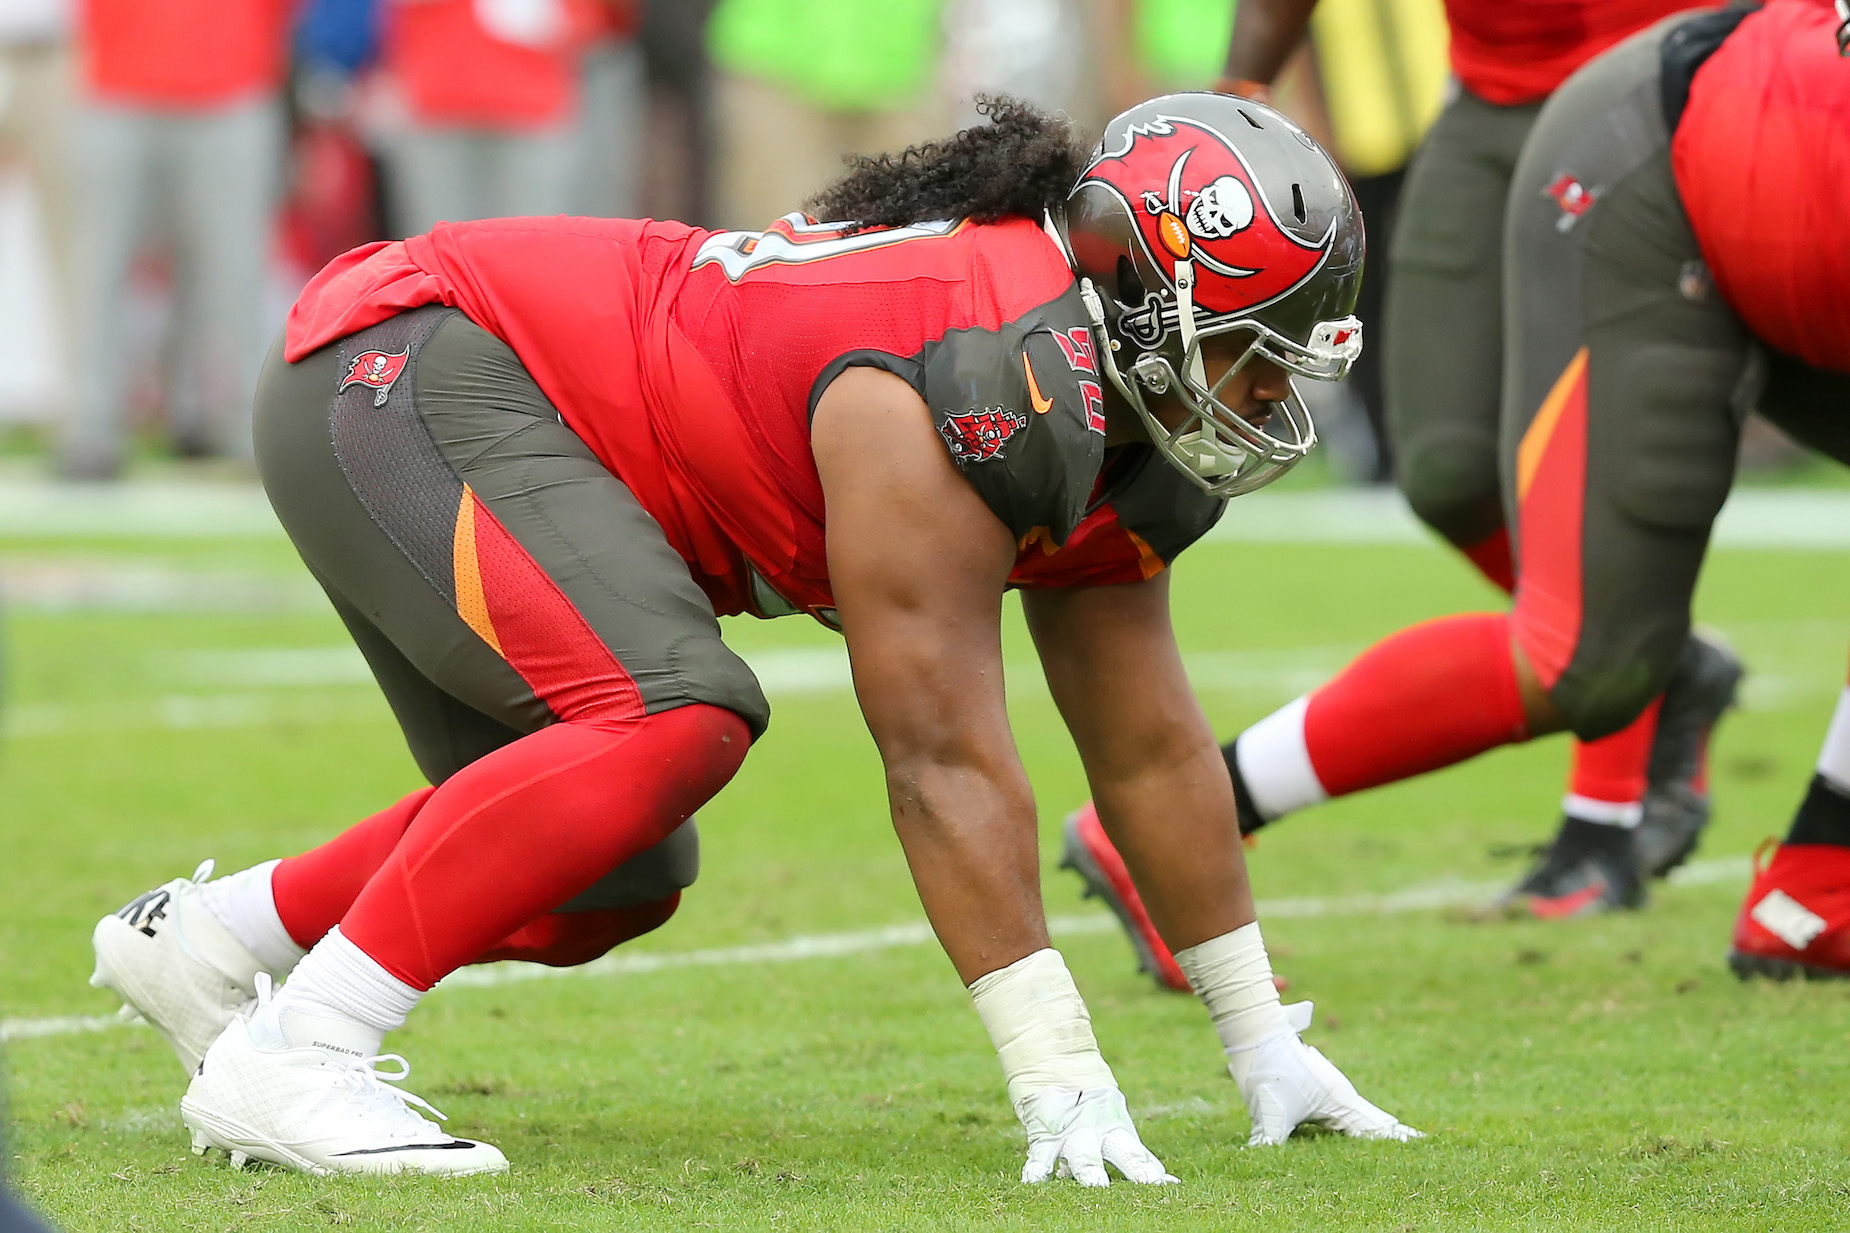 The Tampa Bay Buccaneers' Super Bowl hopes may have just gotten a major boost from Vita Vea.